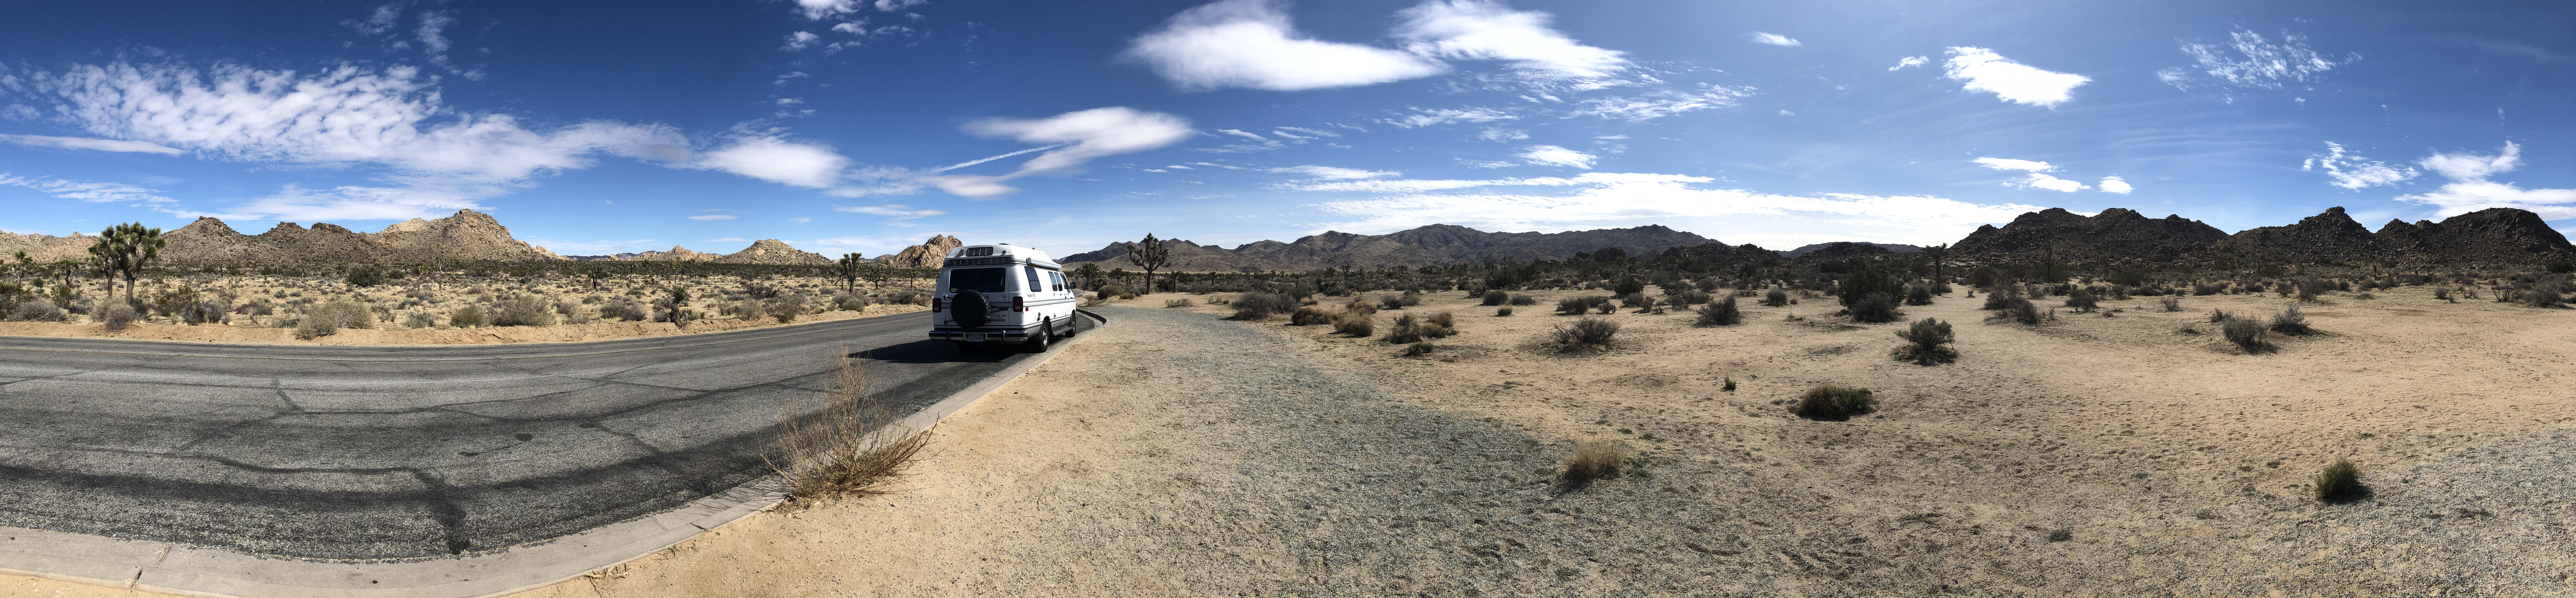 my van on the main road in Joshua Tree National Park